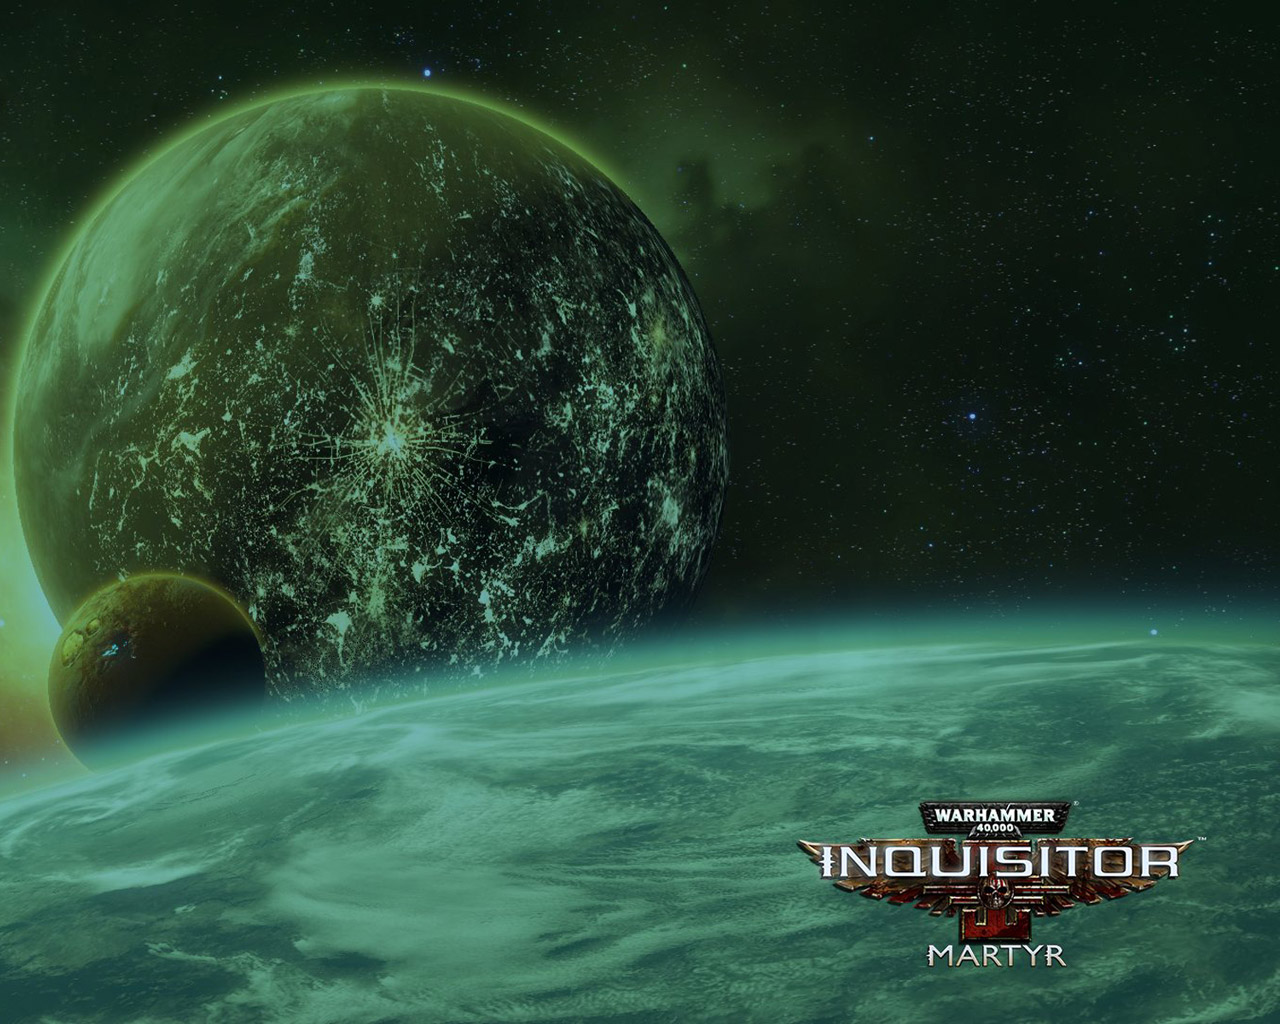 Warhammer 40,000: Inquisitor - Martyr Wallpaper in 1280x1024